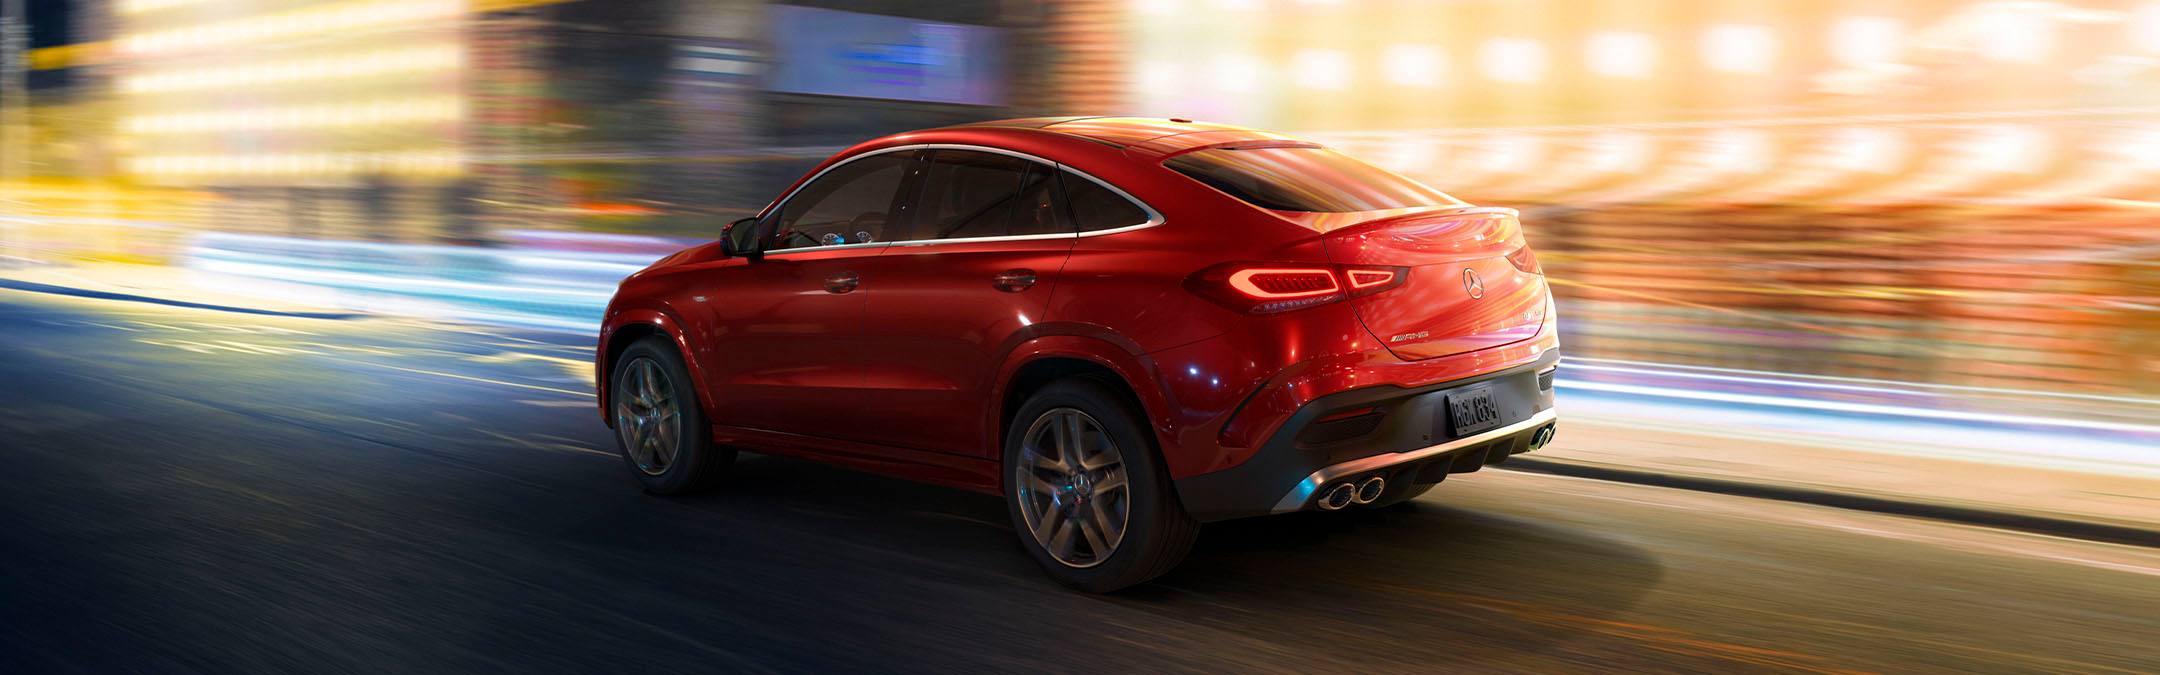 The Gle Coupe Suv Mercedes Benz Canada